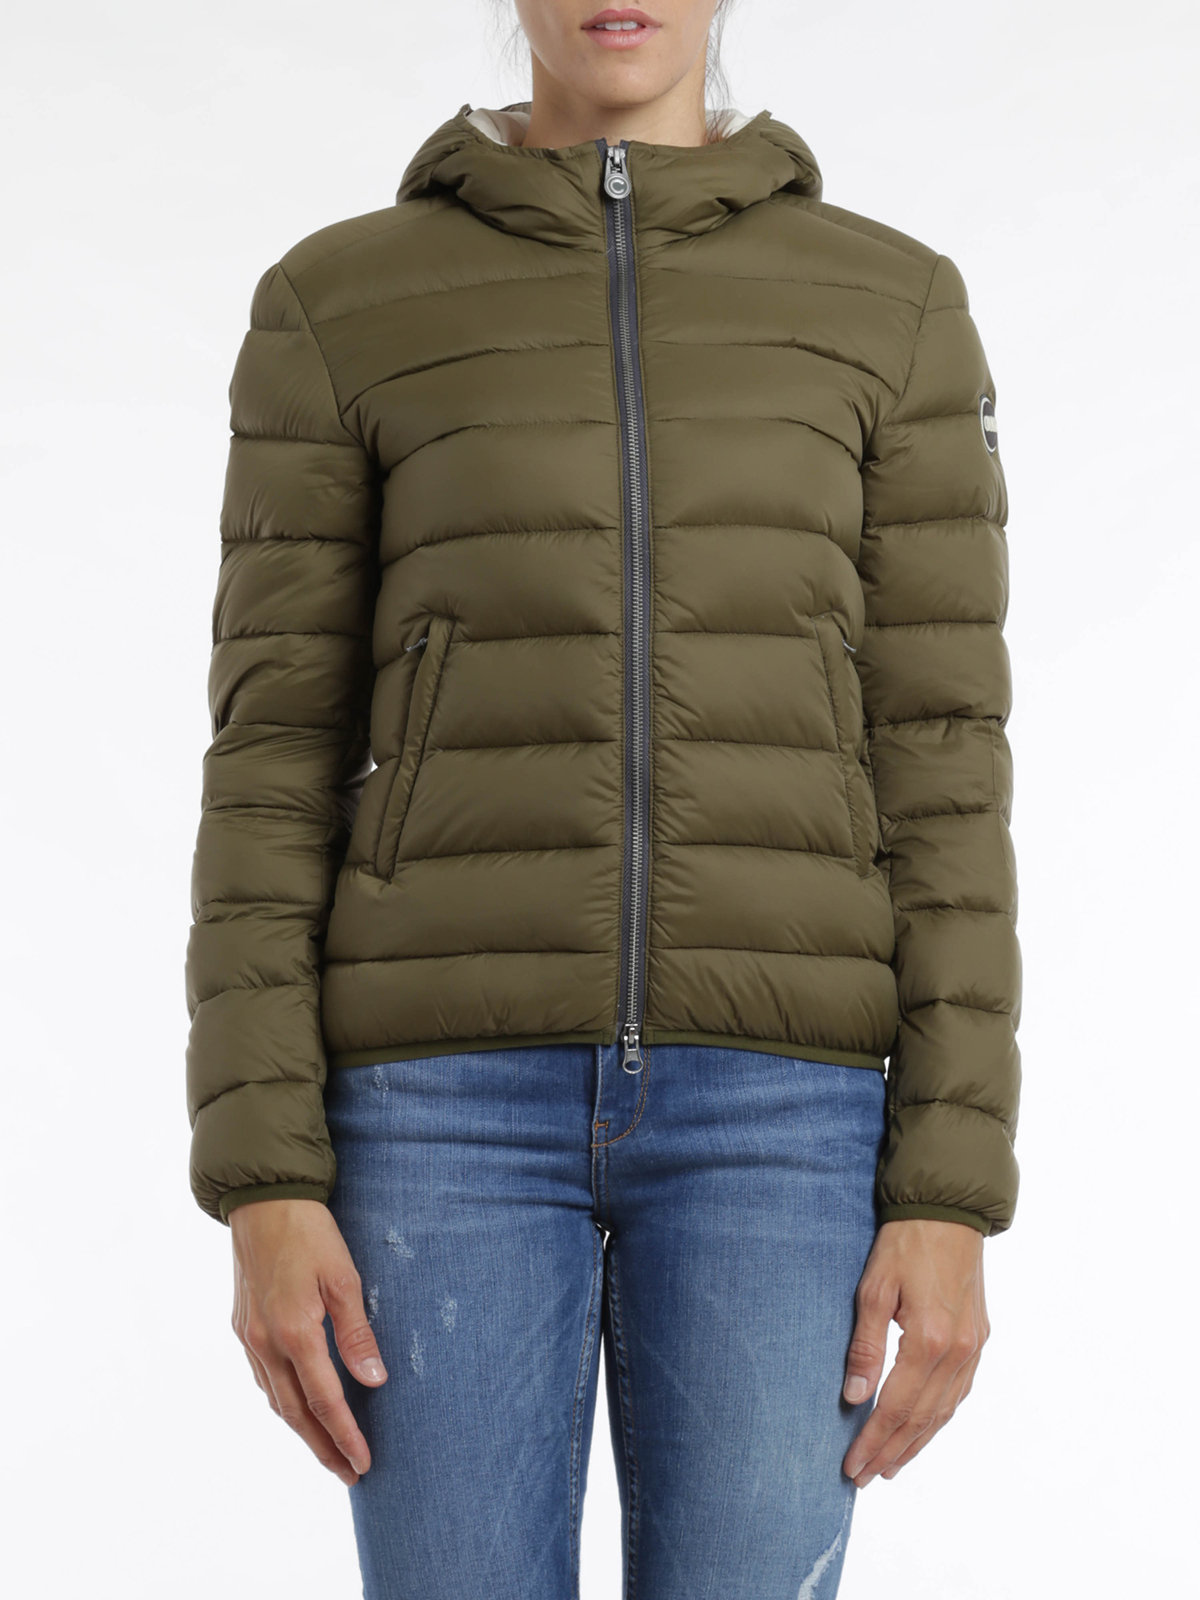 Originals Colmar Kurze down jacket Honor Daunenjacken cTl1JKF3